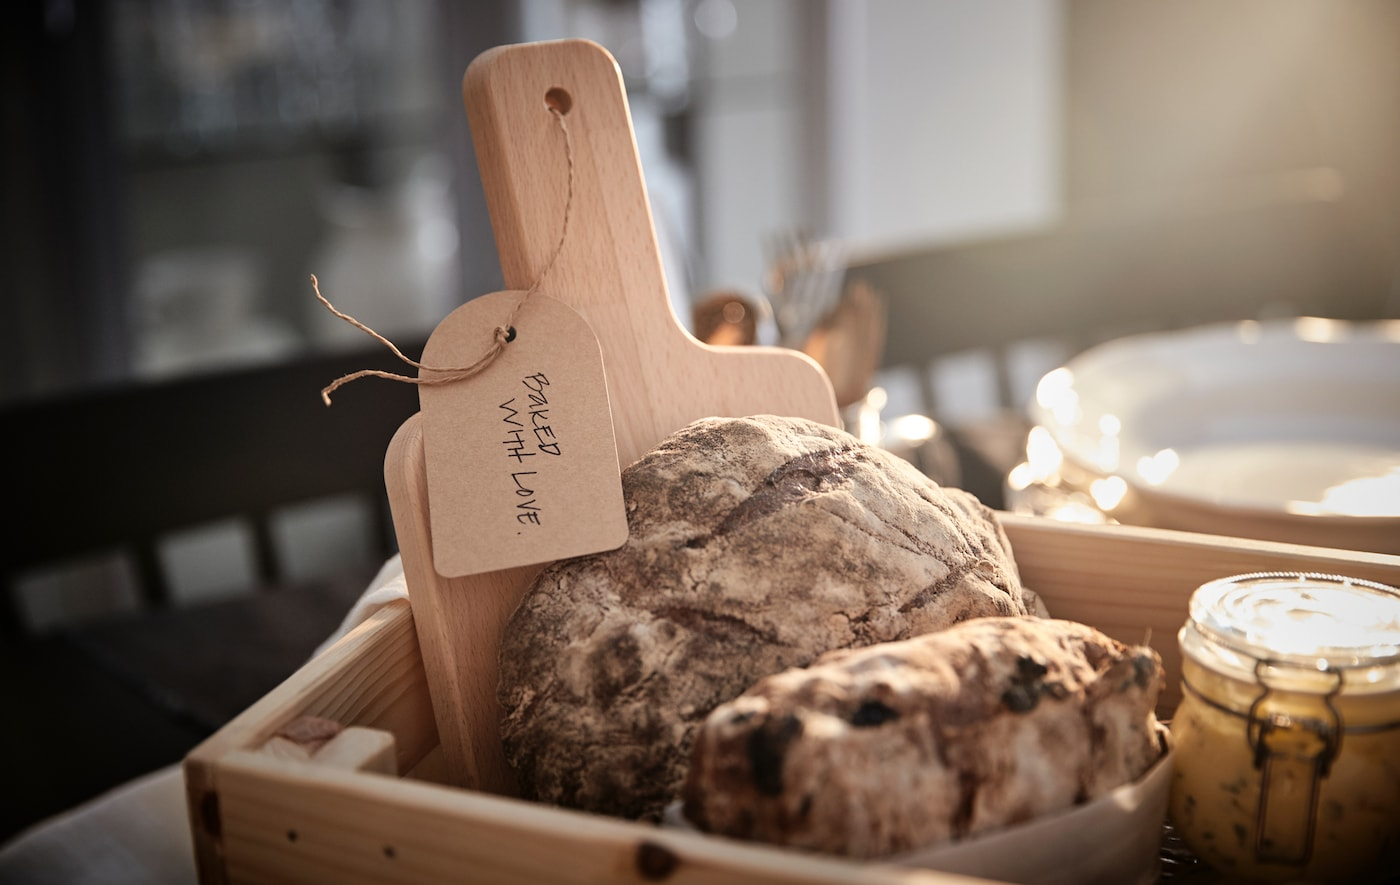 A wooden box filled with loaves of bread, a chopping board labelled as a gift and a glass jar.